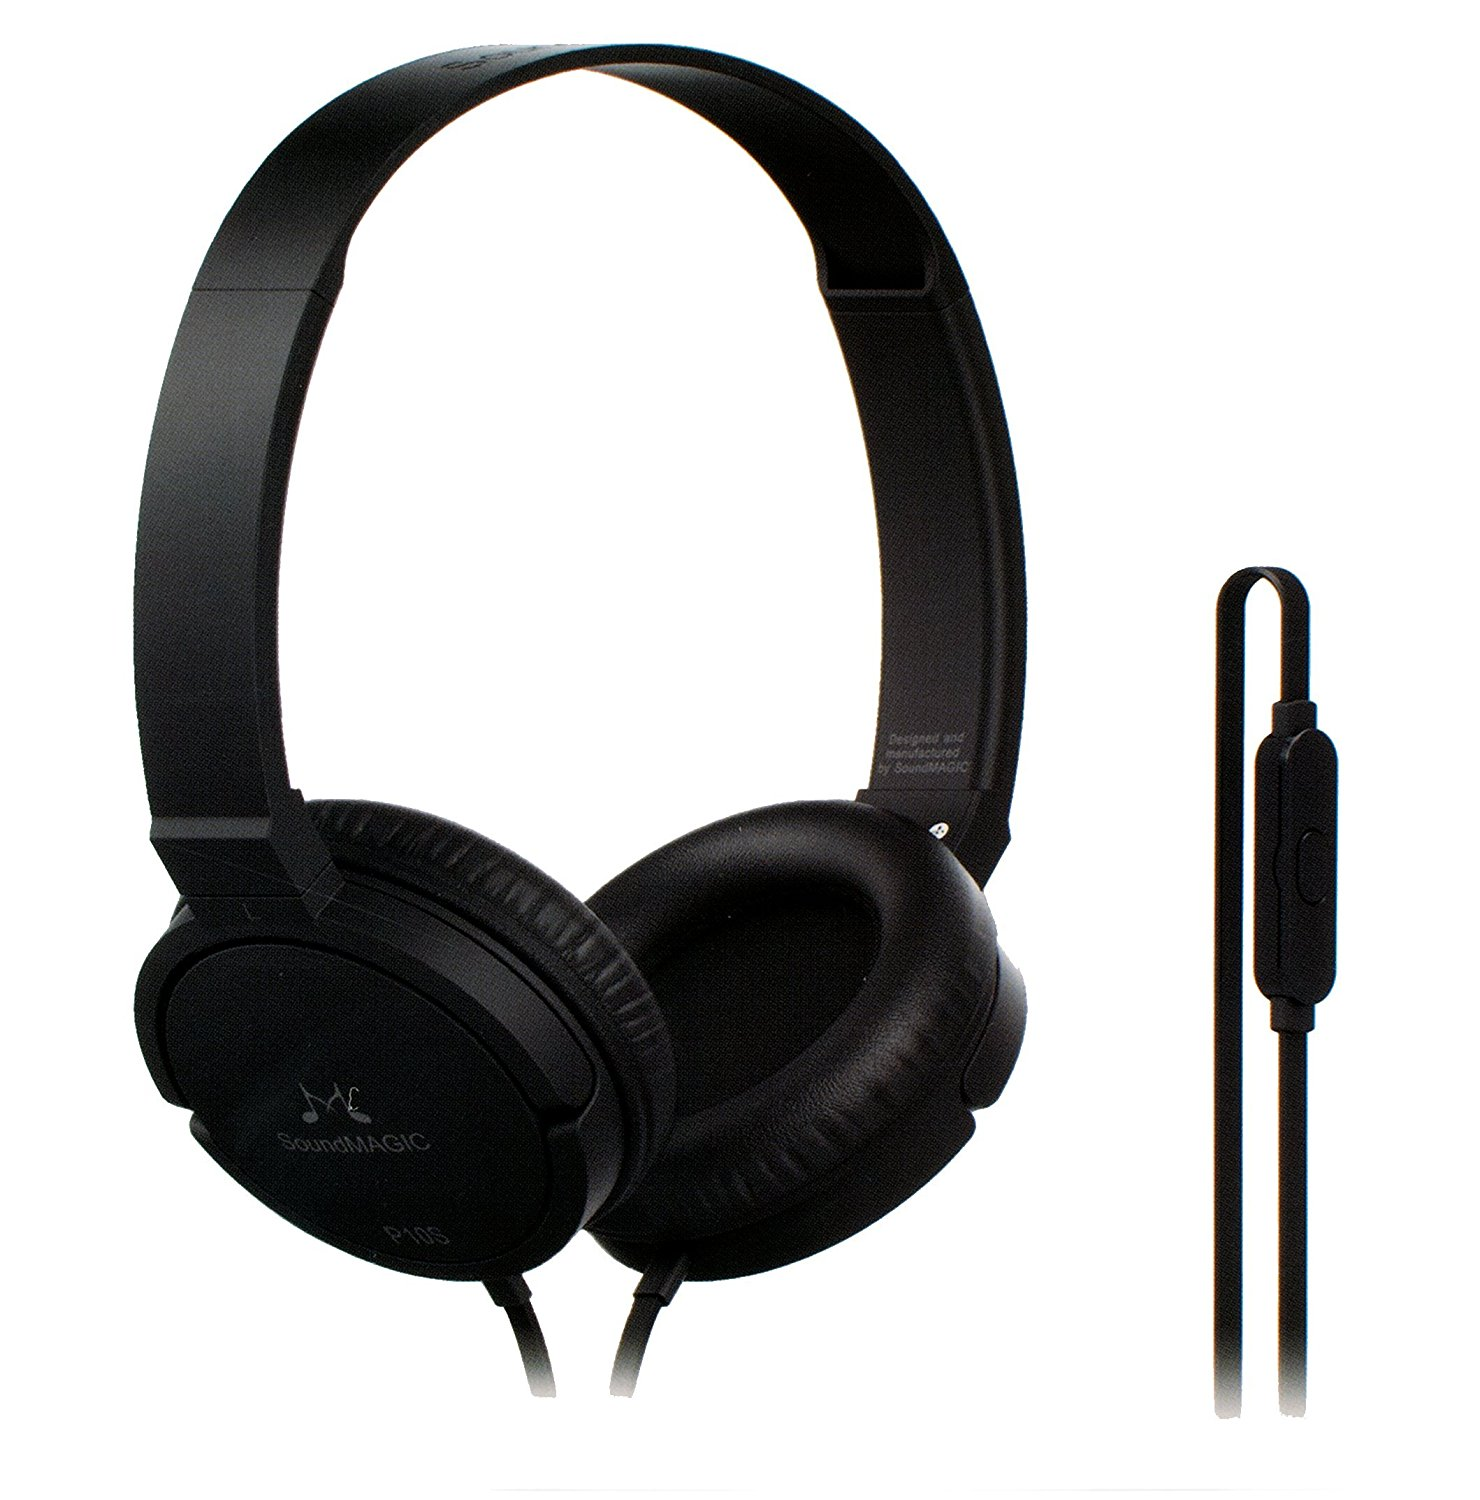 SoundMagic P10S Black Gunmetal Headphone With Mic